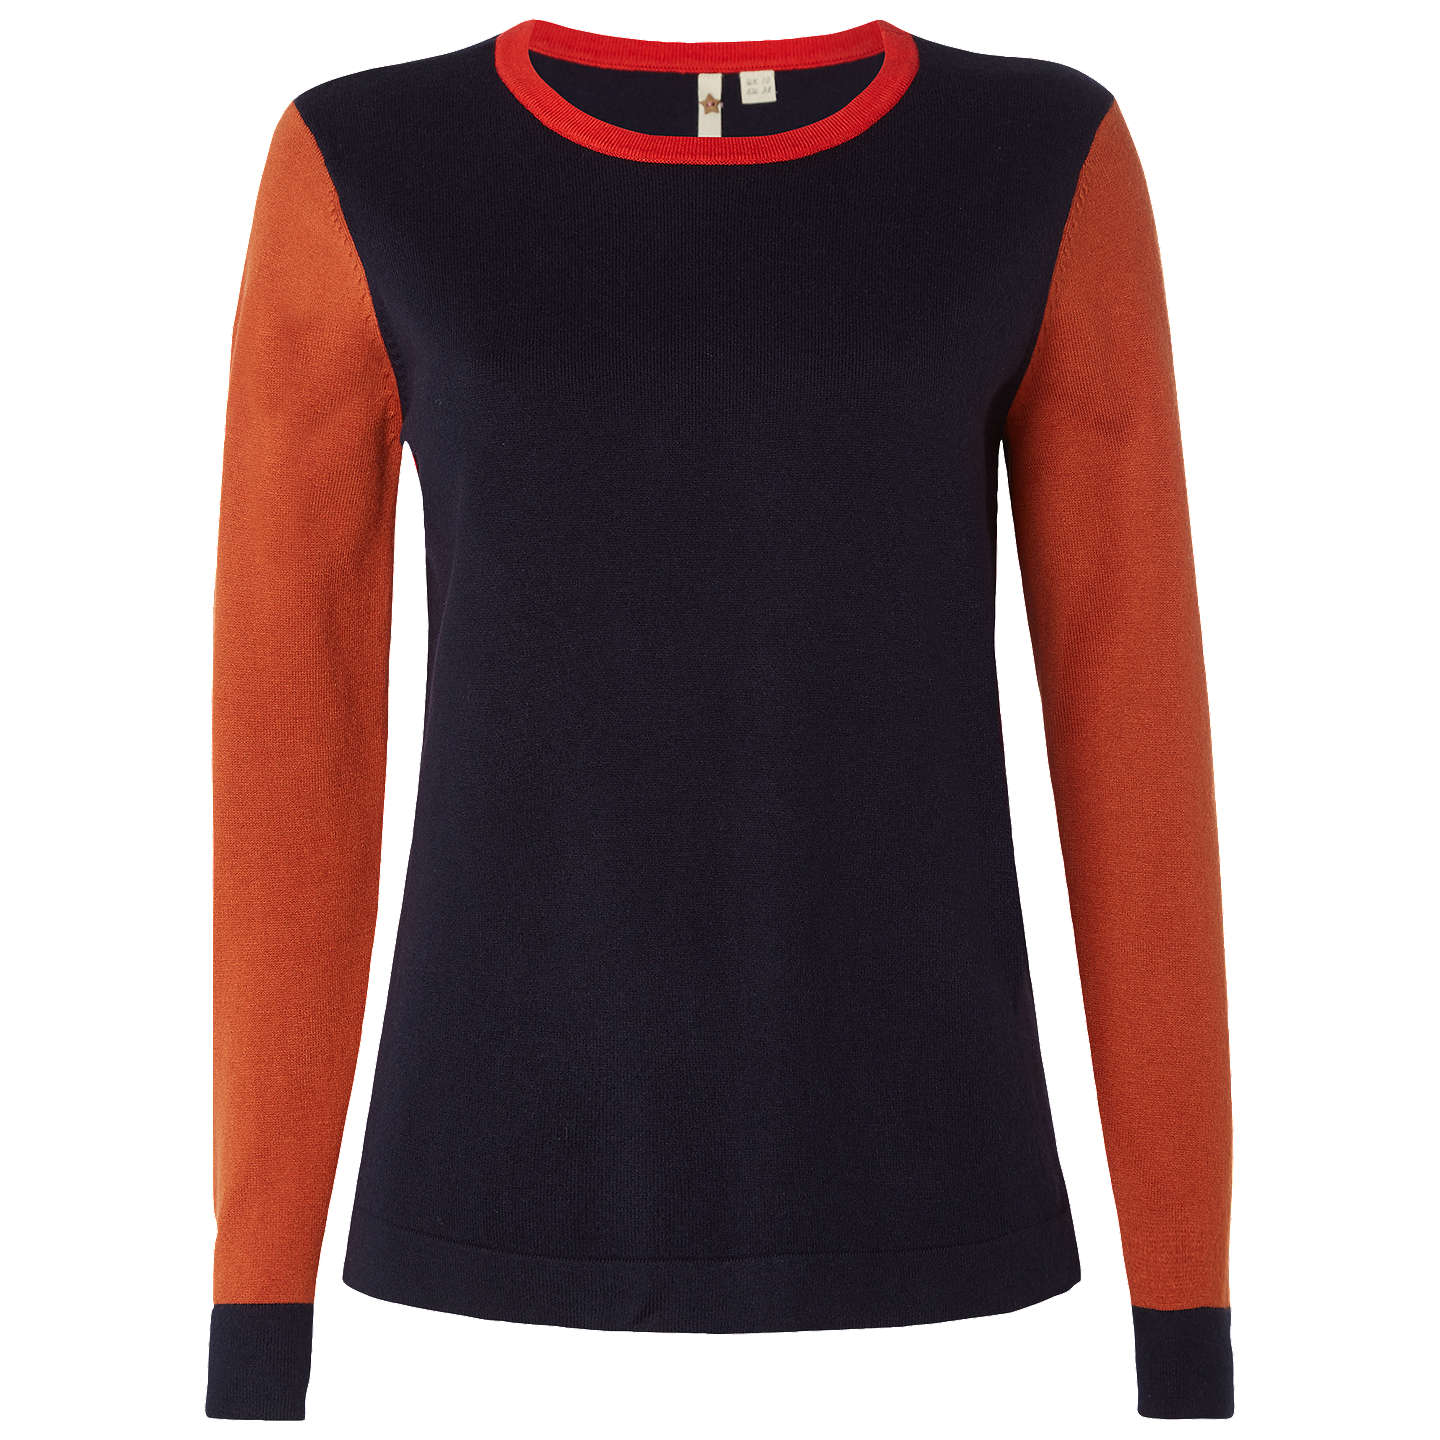 BuyWhite Stuff Leafy Avenue Jumper, Multi/Navy, 6 Online at johnlewis.com